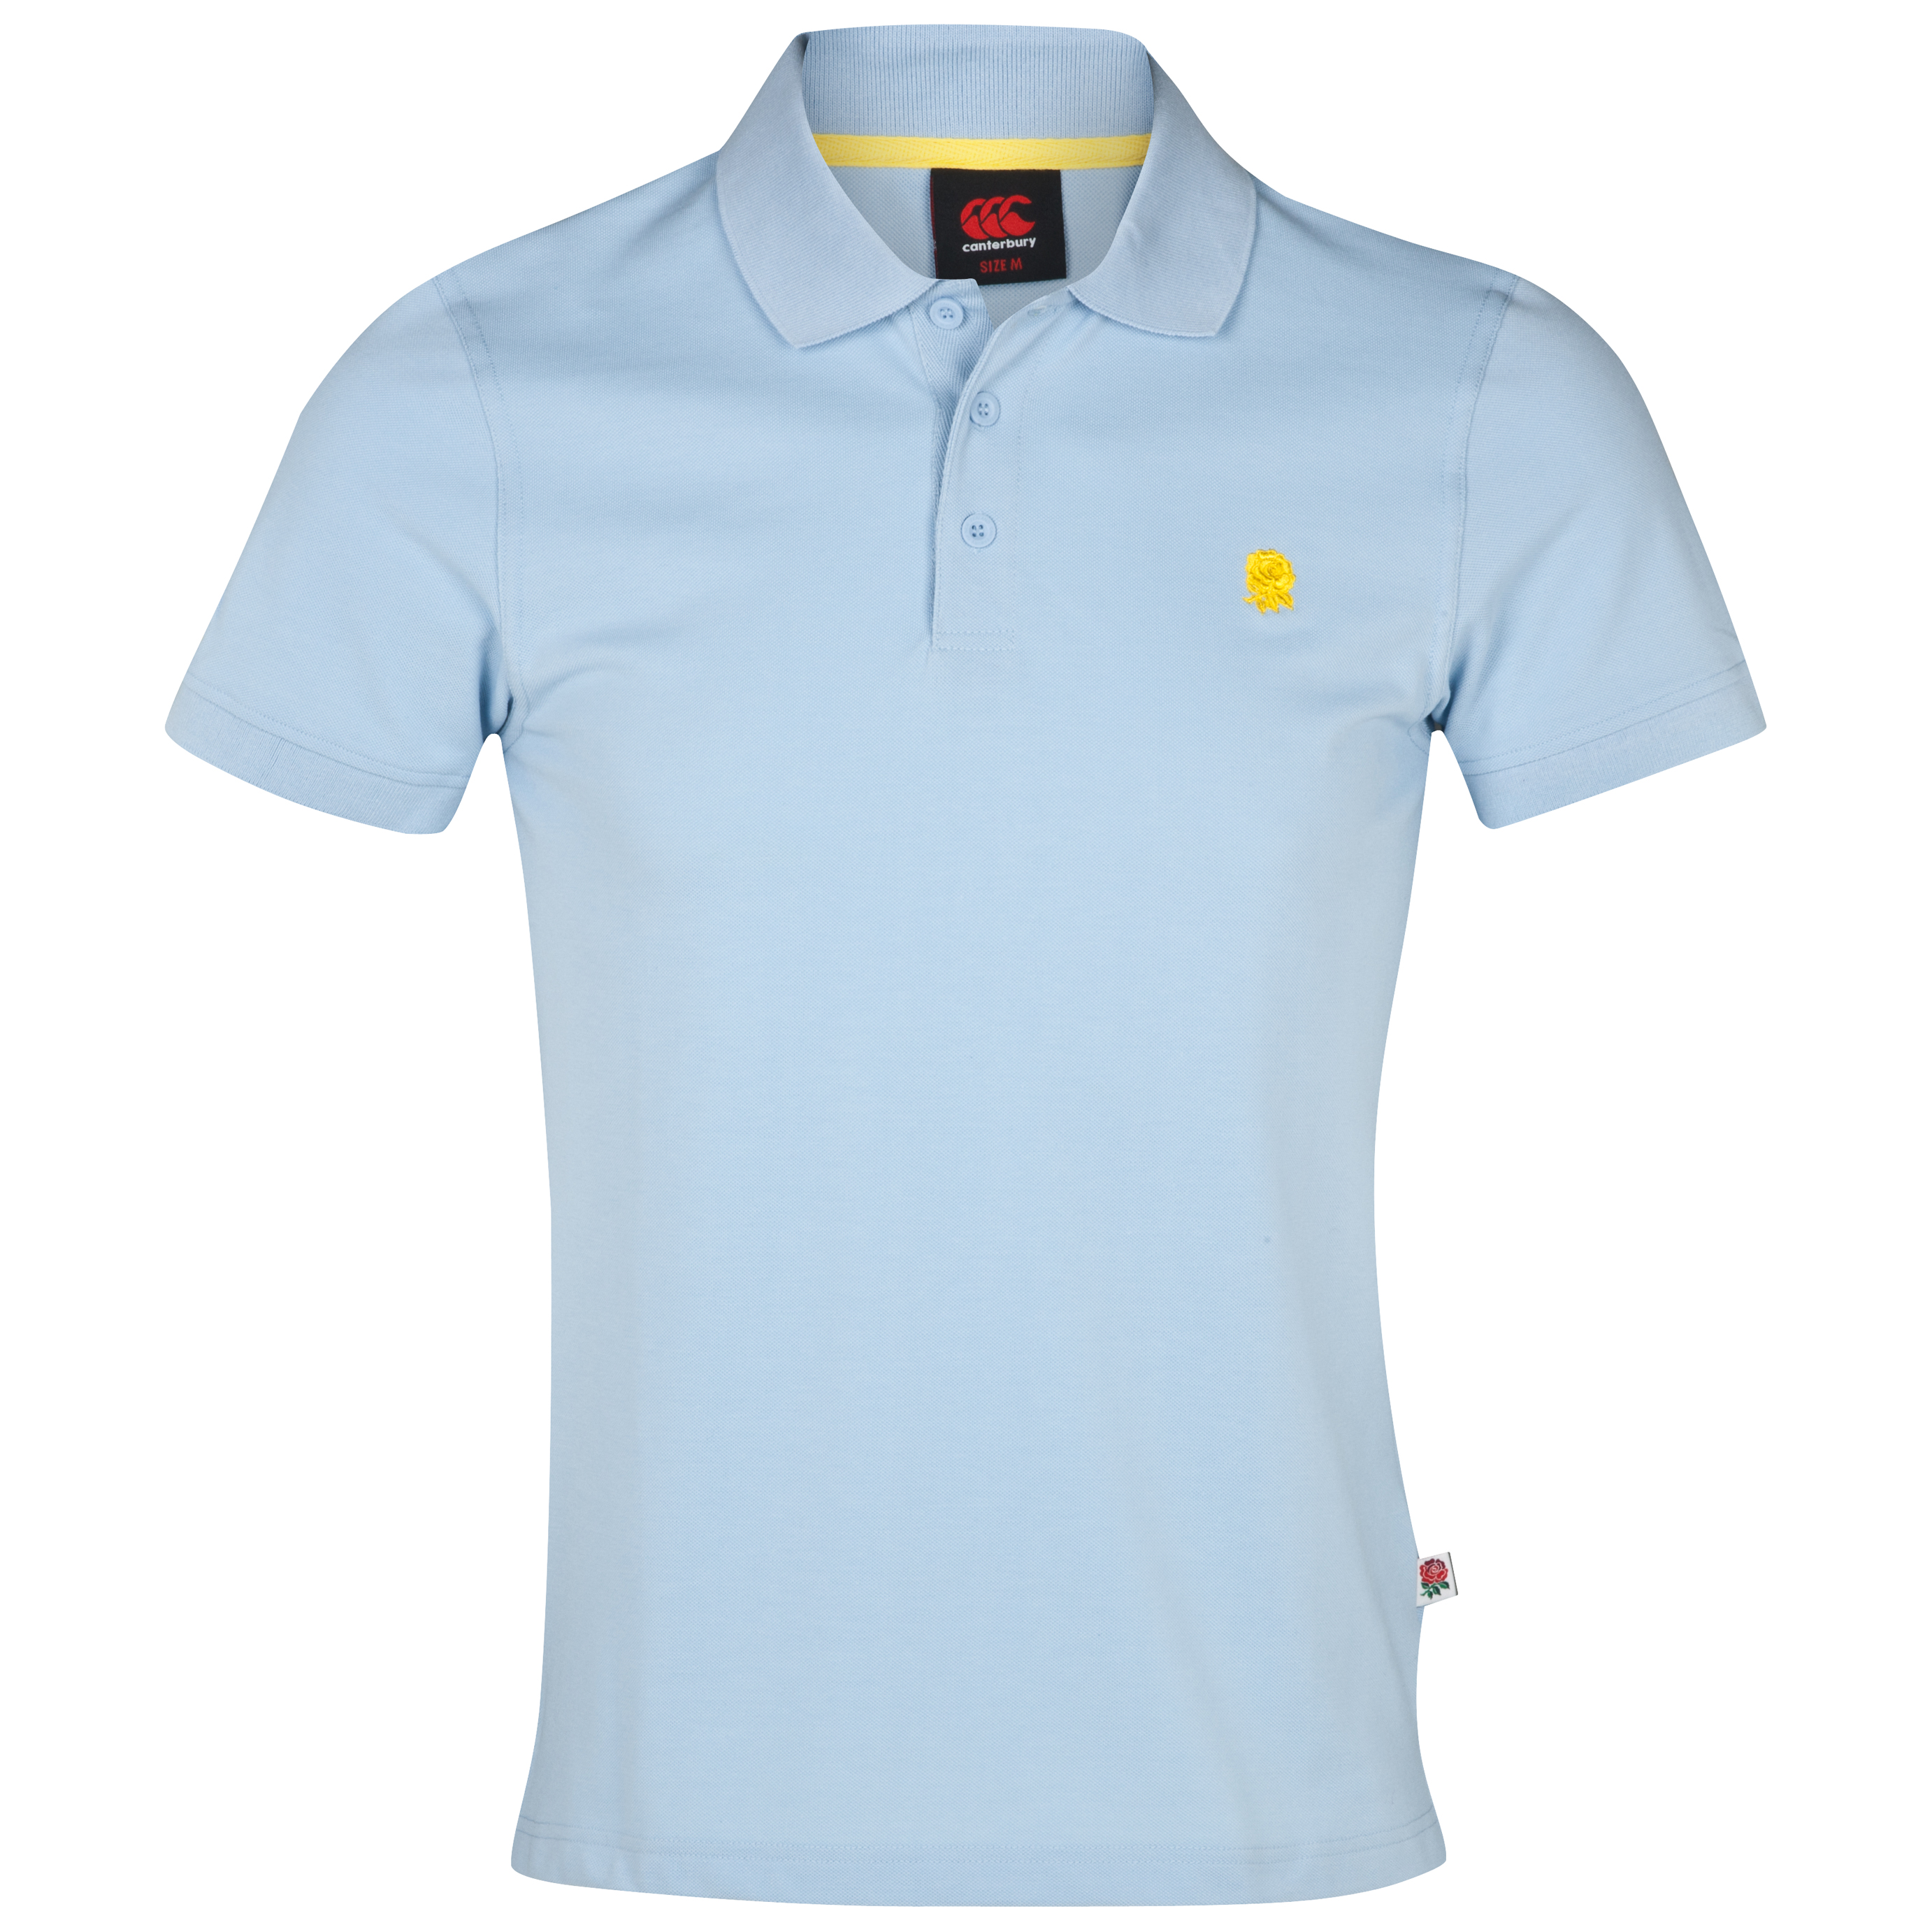 England Lifestyle Polo - Cerulean